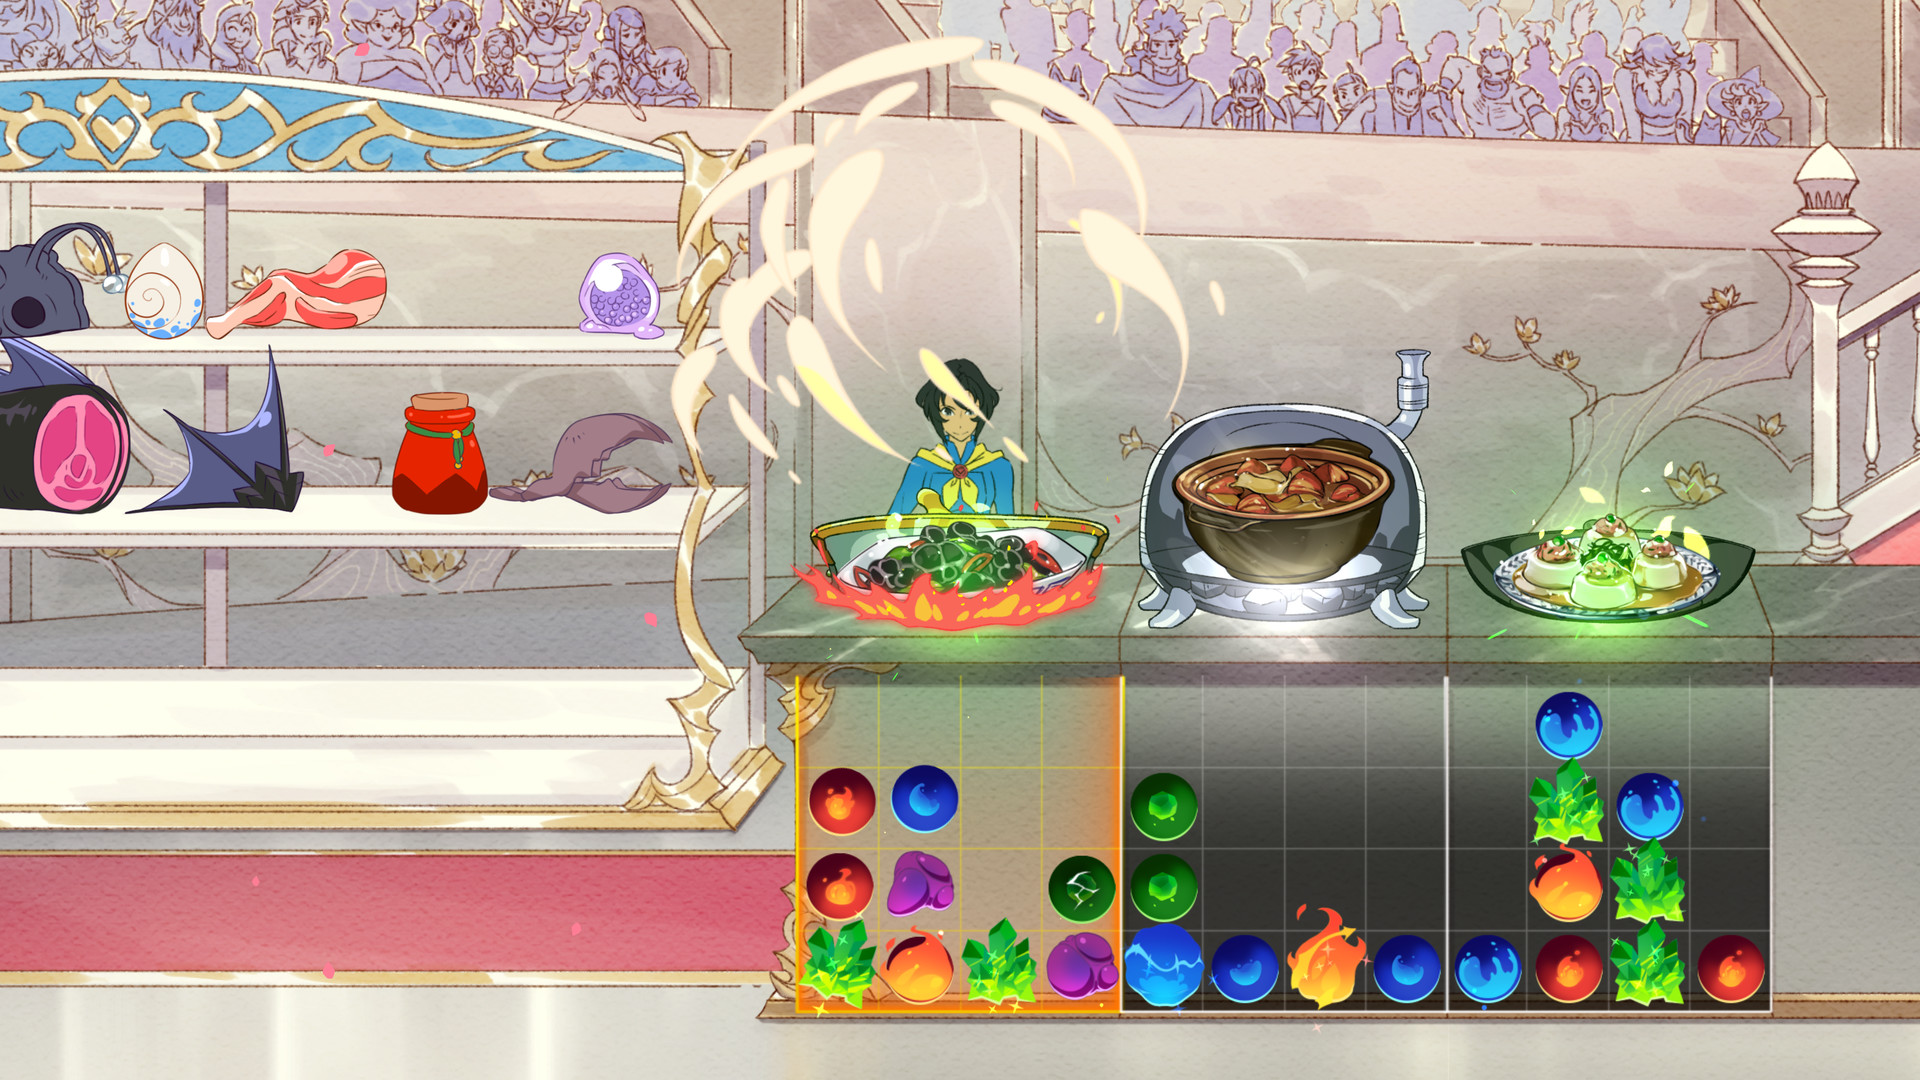 Fight monsters and cook delectable meals in Battle Chef Brigade, releasing on Nintendo Switch this month